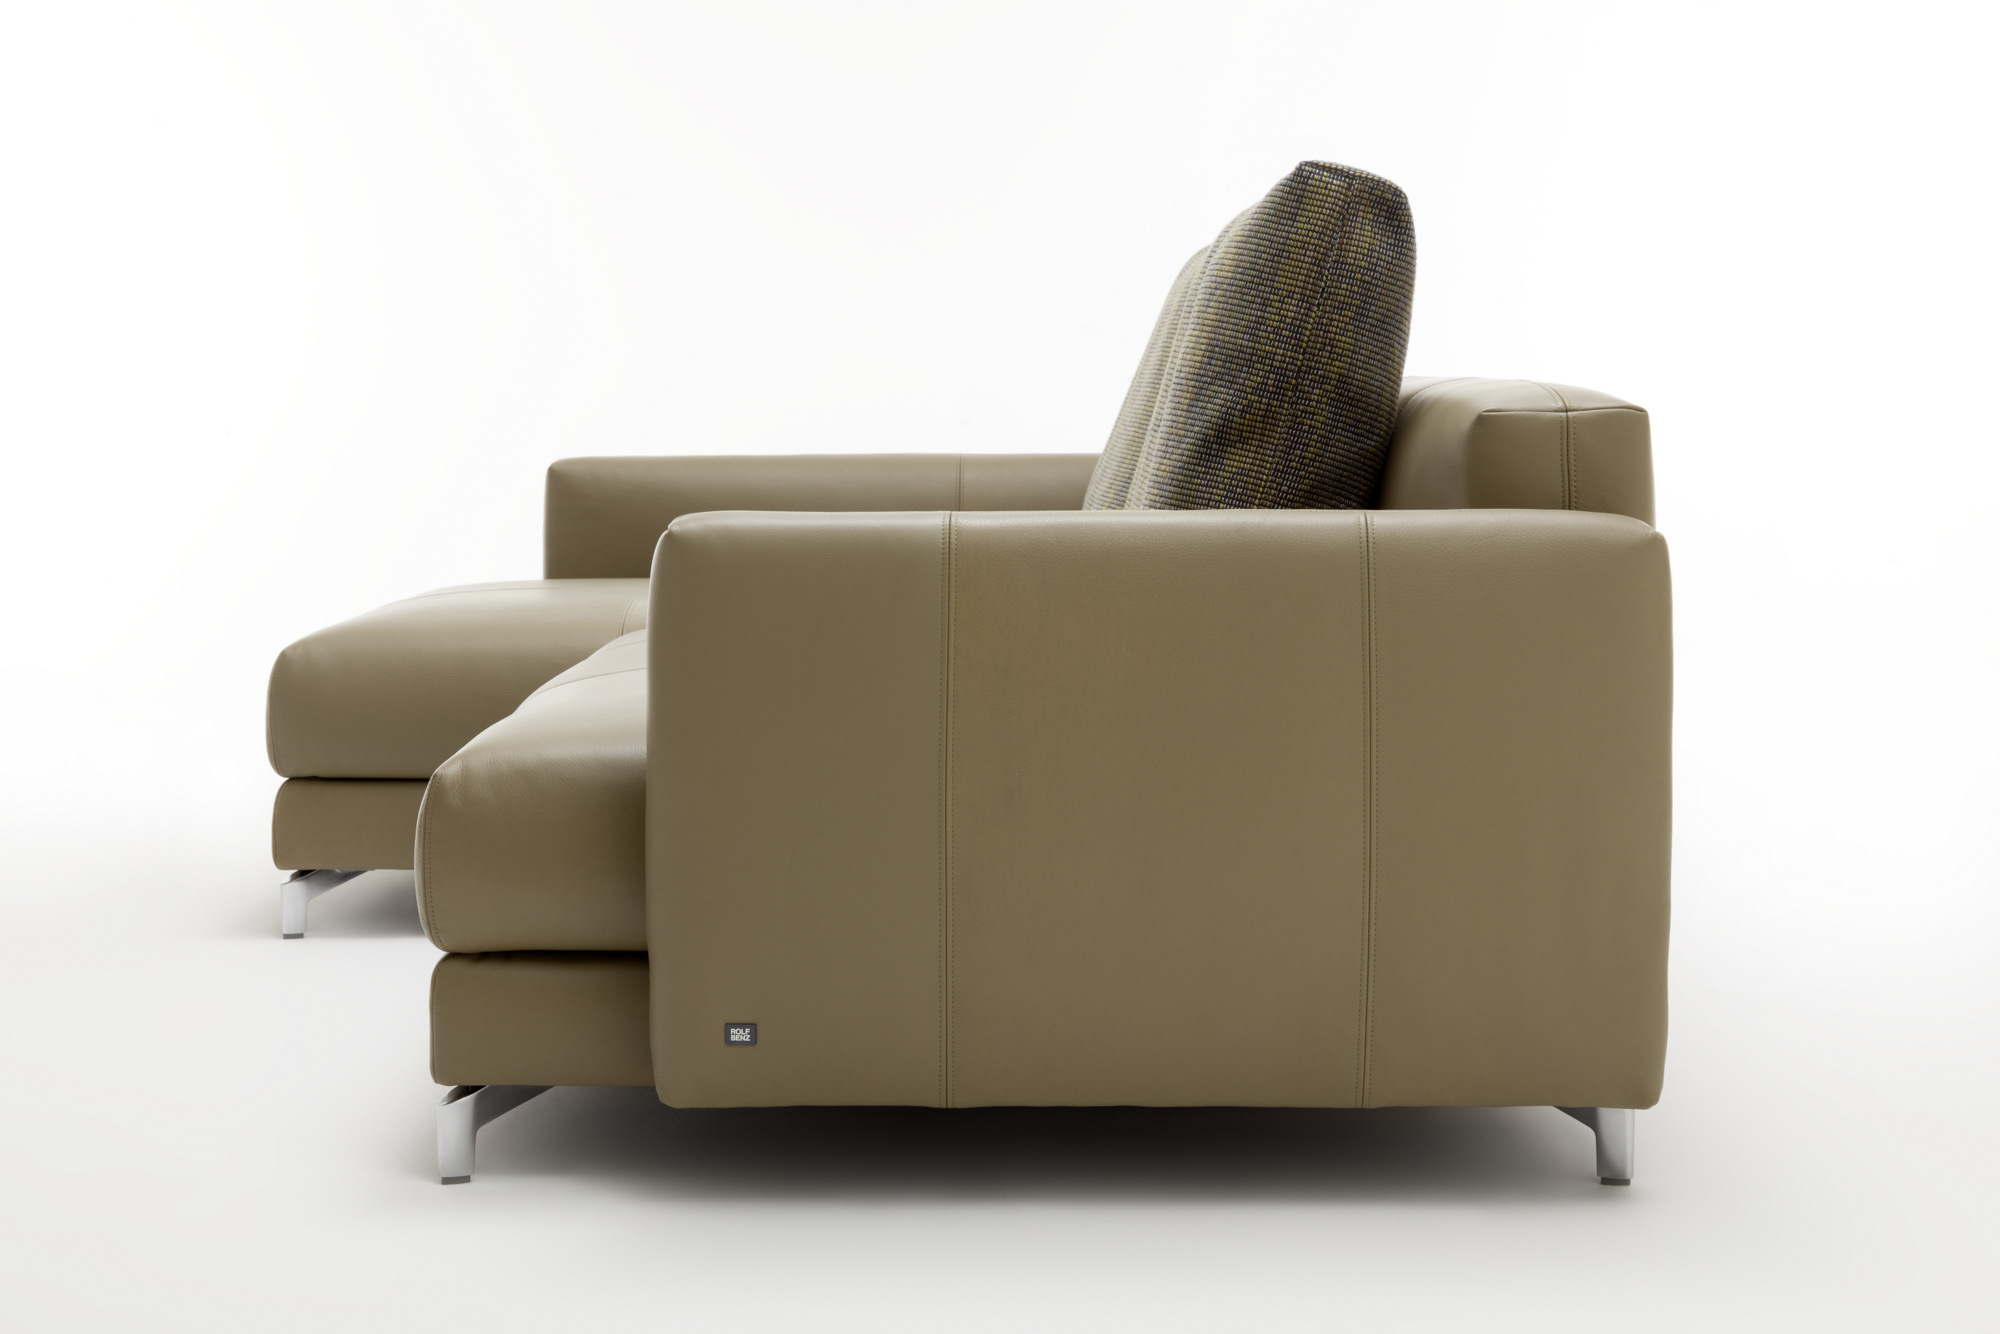 sectional leather sofa with chaise longue nuvola sofa. Black Bedroom Furniture Sets. Home Design Ideas